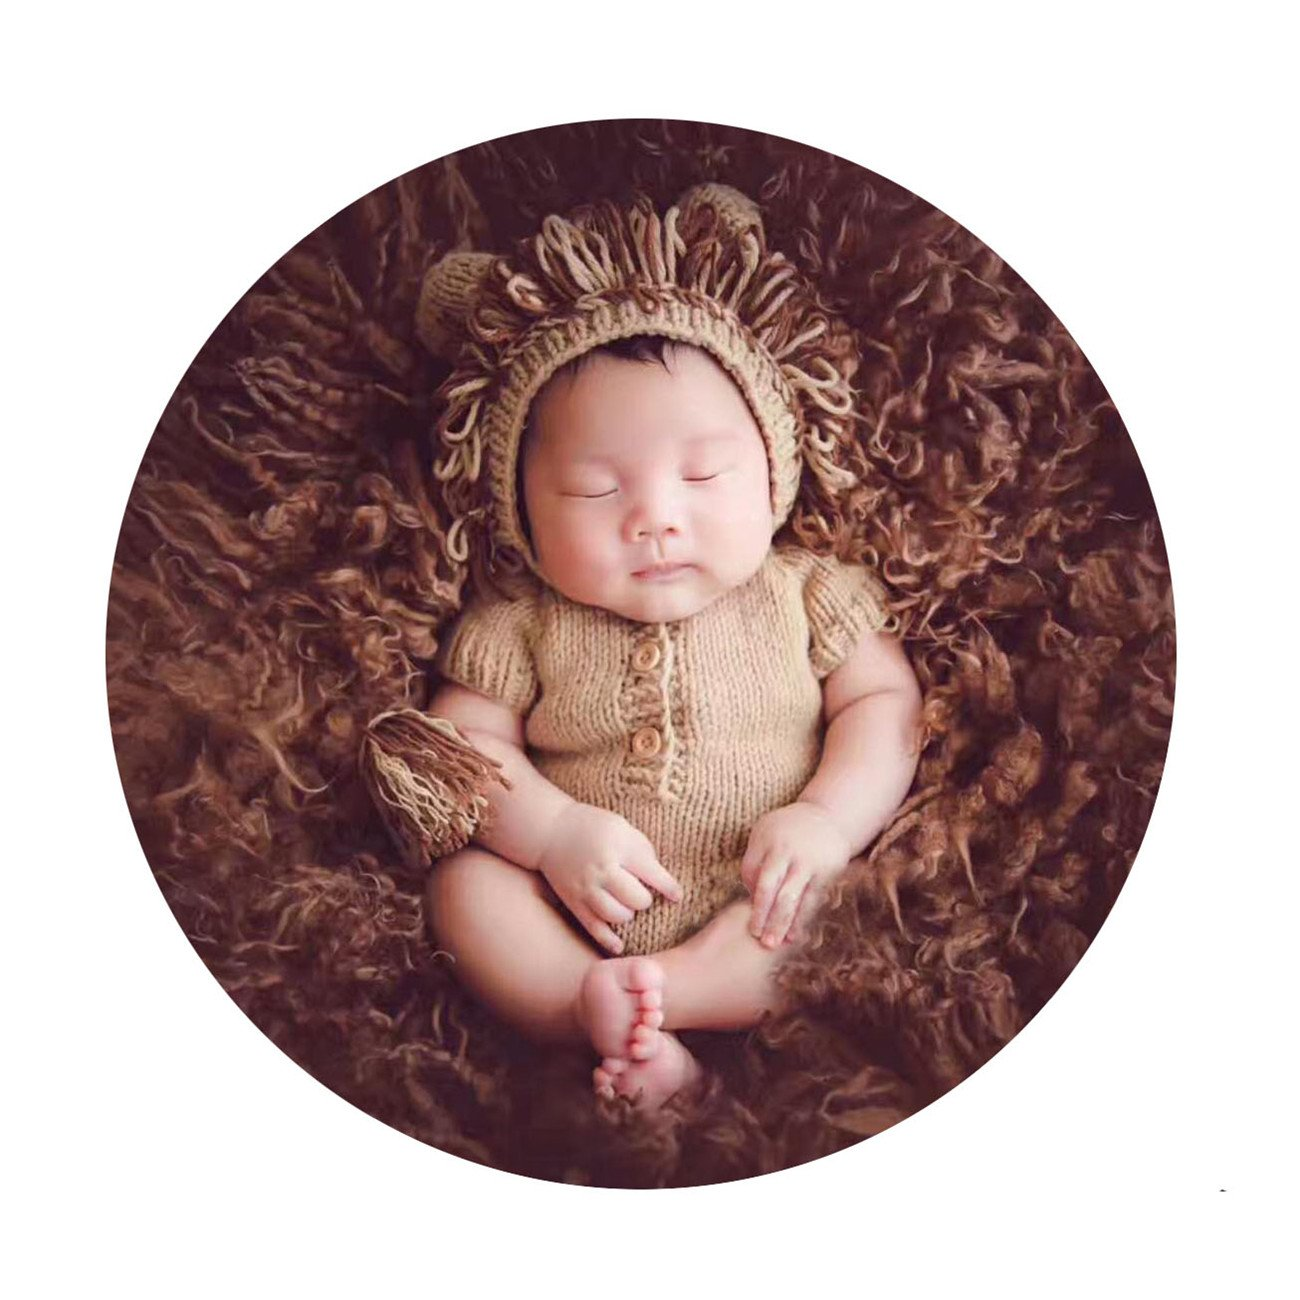 M&G House Newborn Photography Props Lion Costume, Baby Photo Shoot Accessories